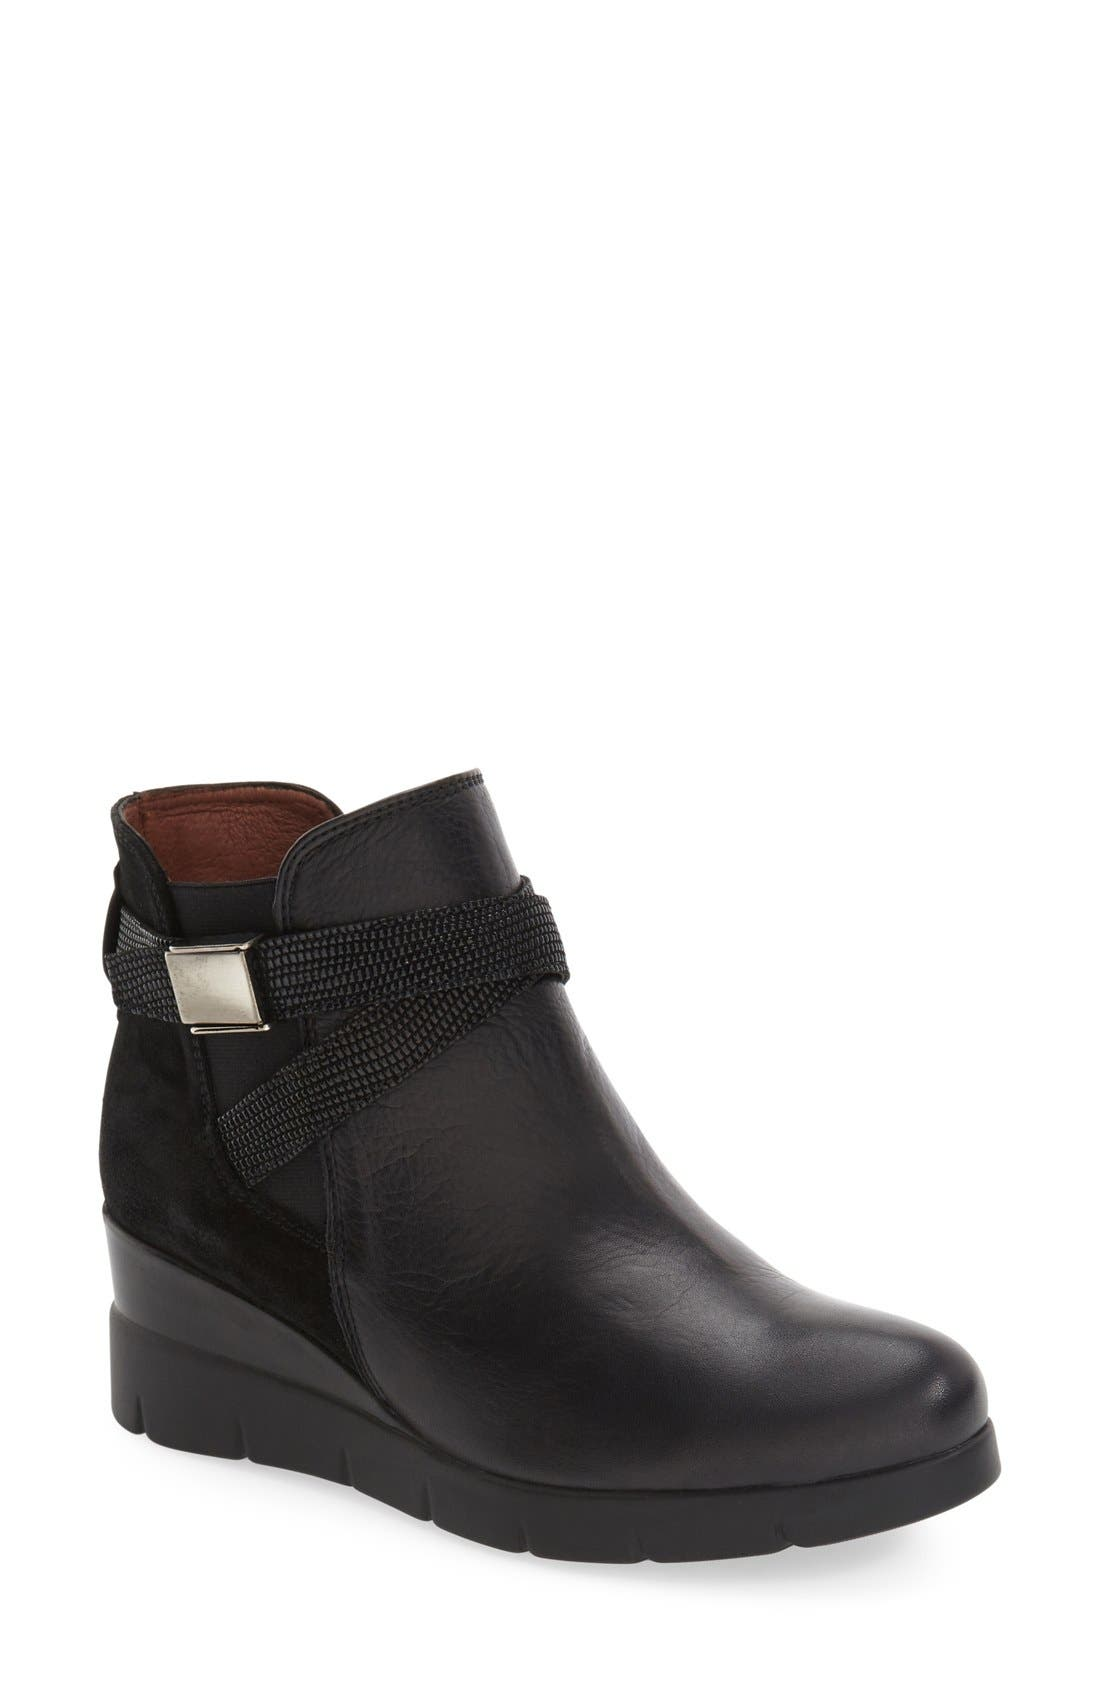 Hispanitas 'Larae' Wedge Bootie (Women)